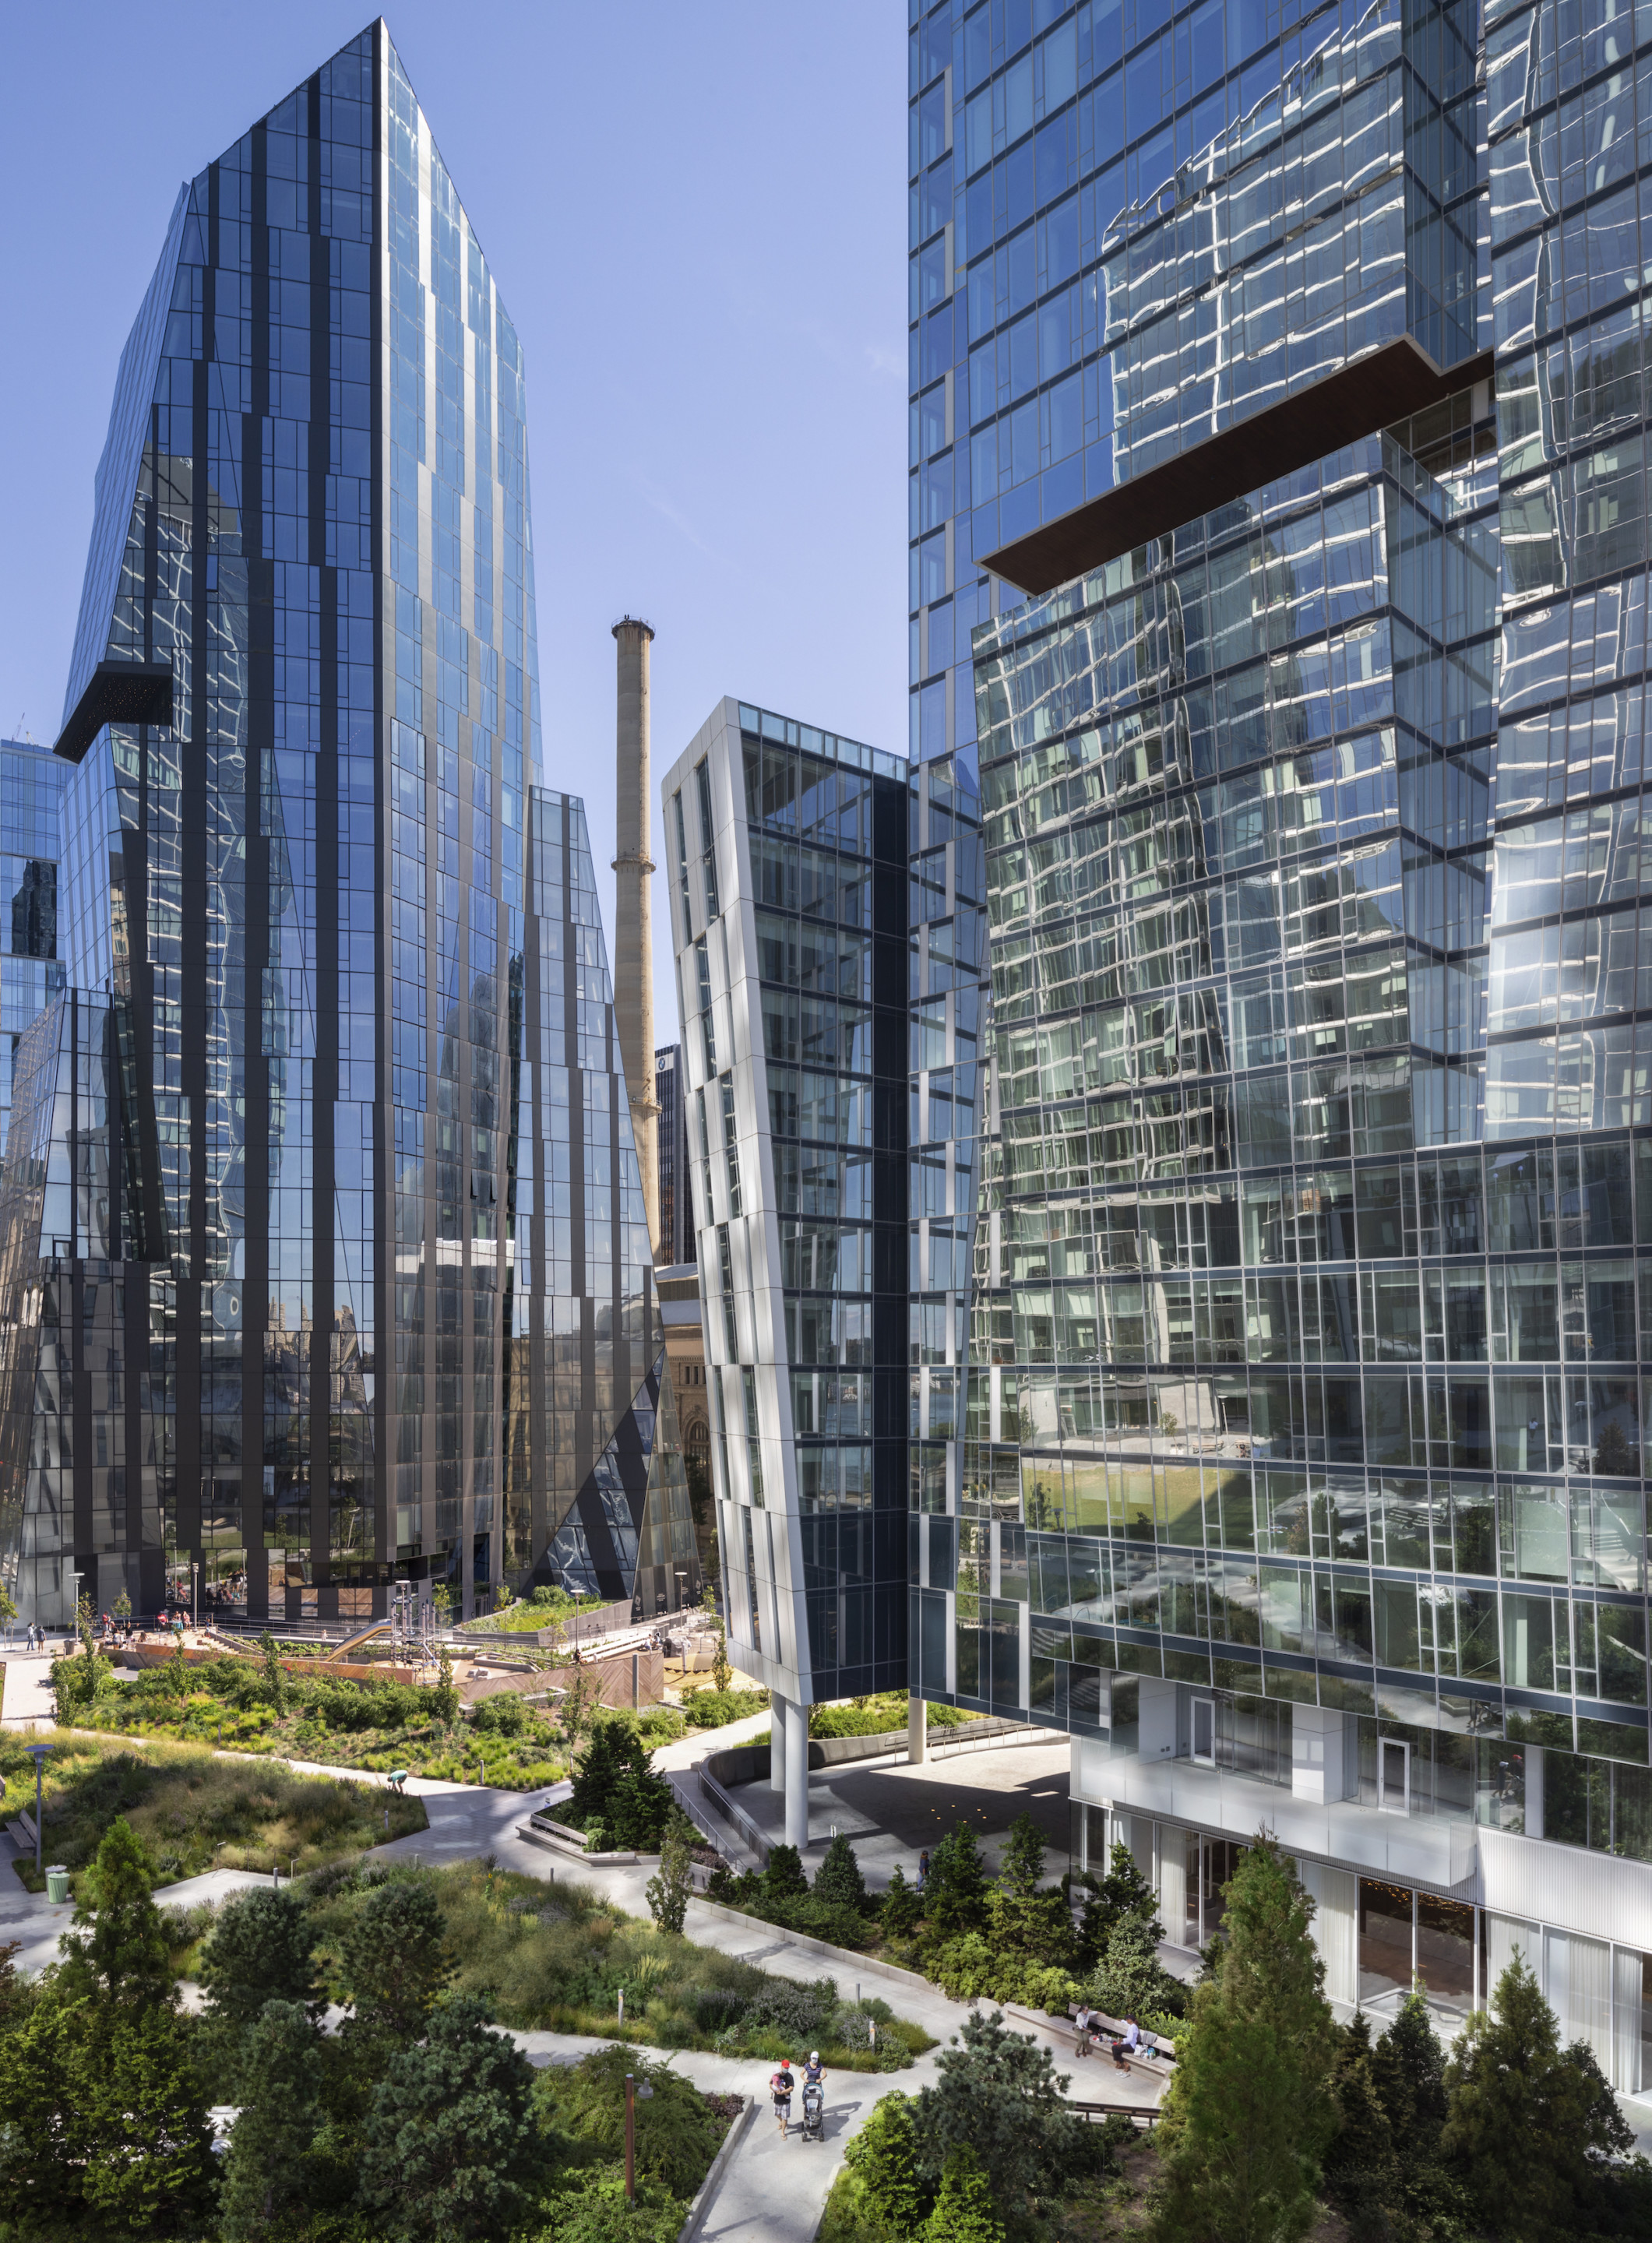 aerial view of a city park surrounded by tall glass towers